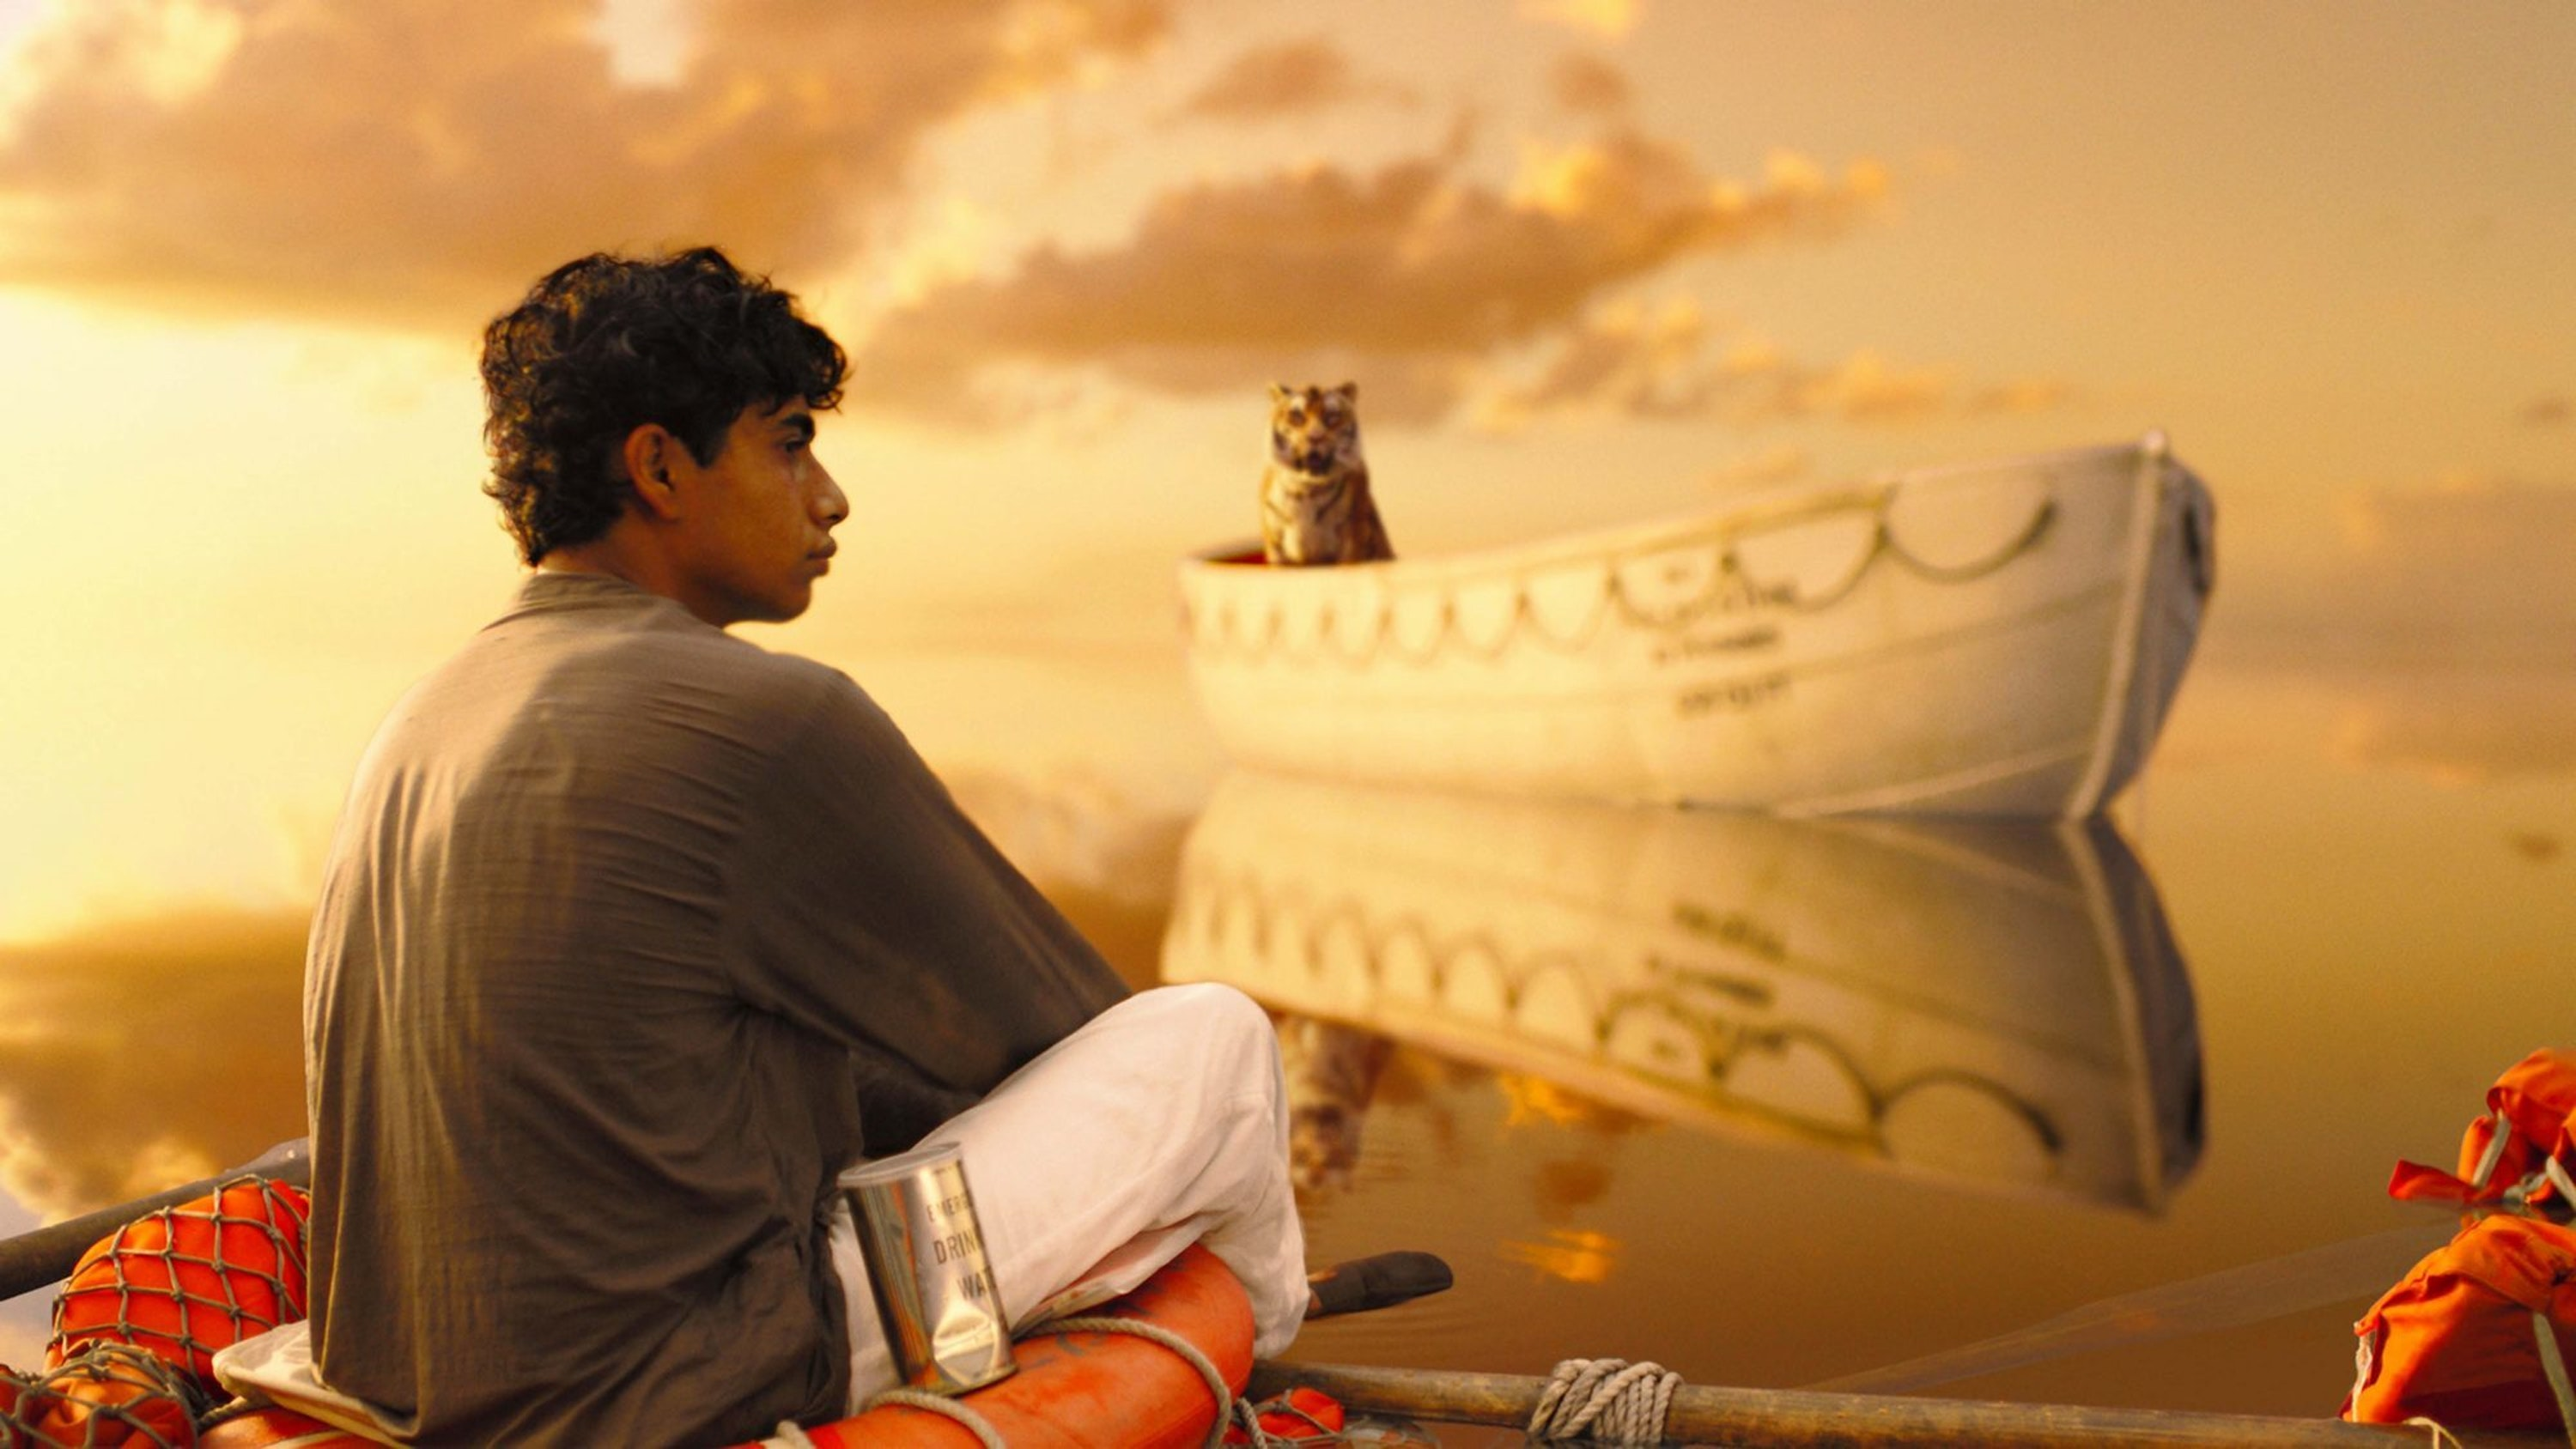 One of the 'liquid gold' scenes from Life of Pi.